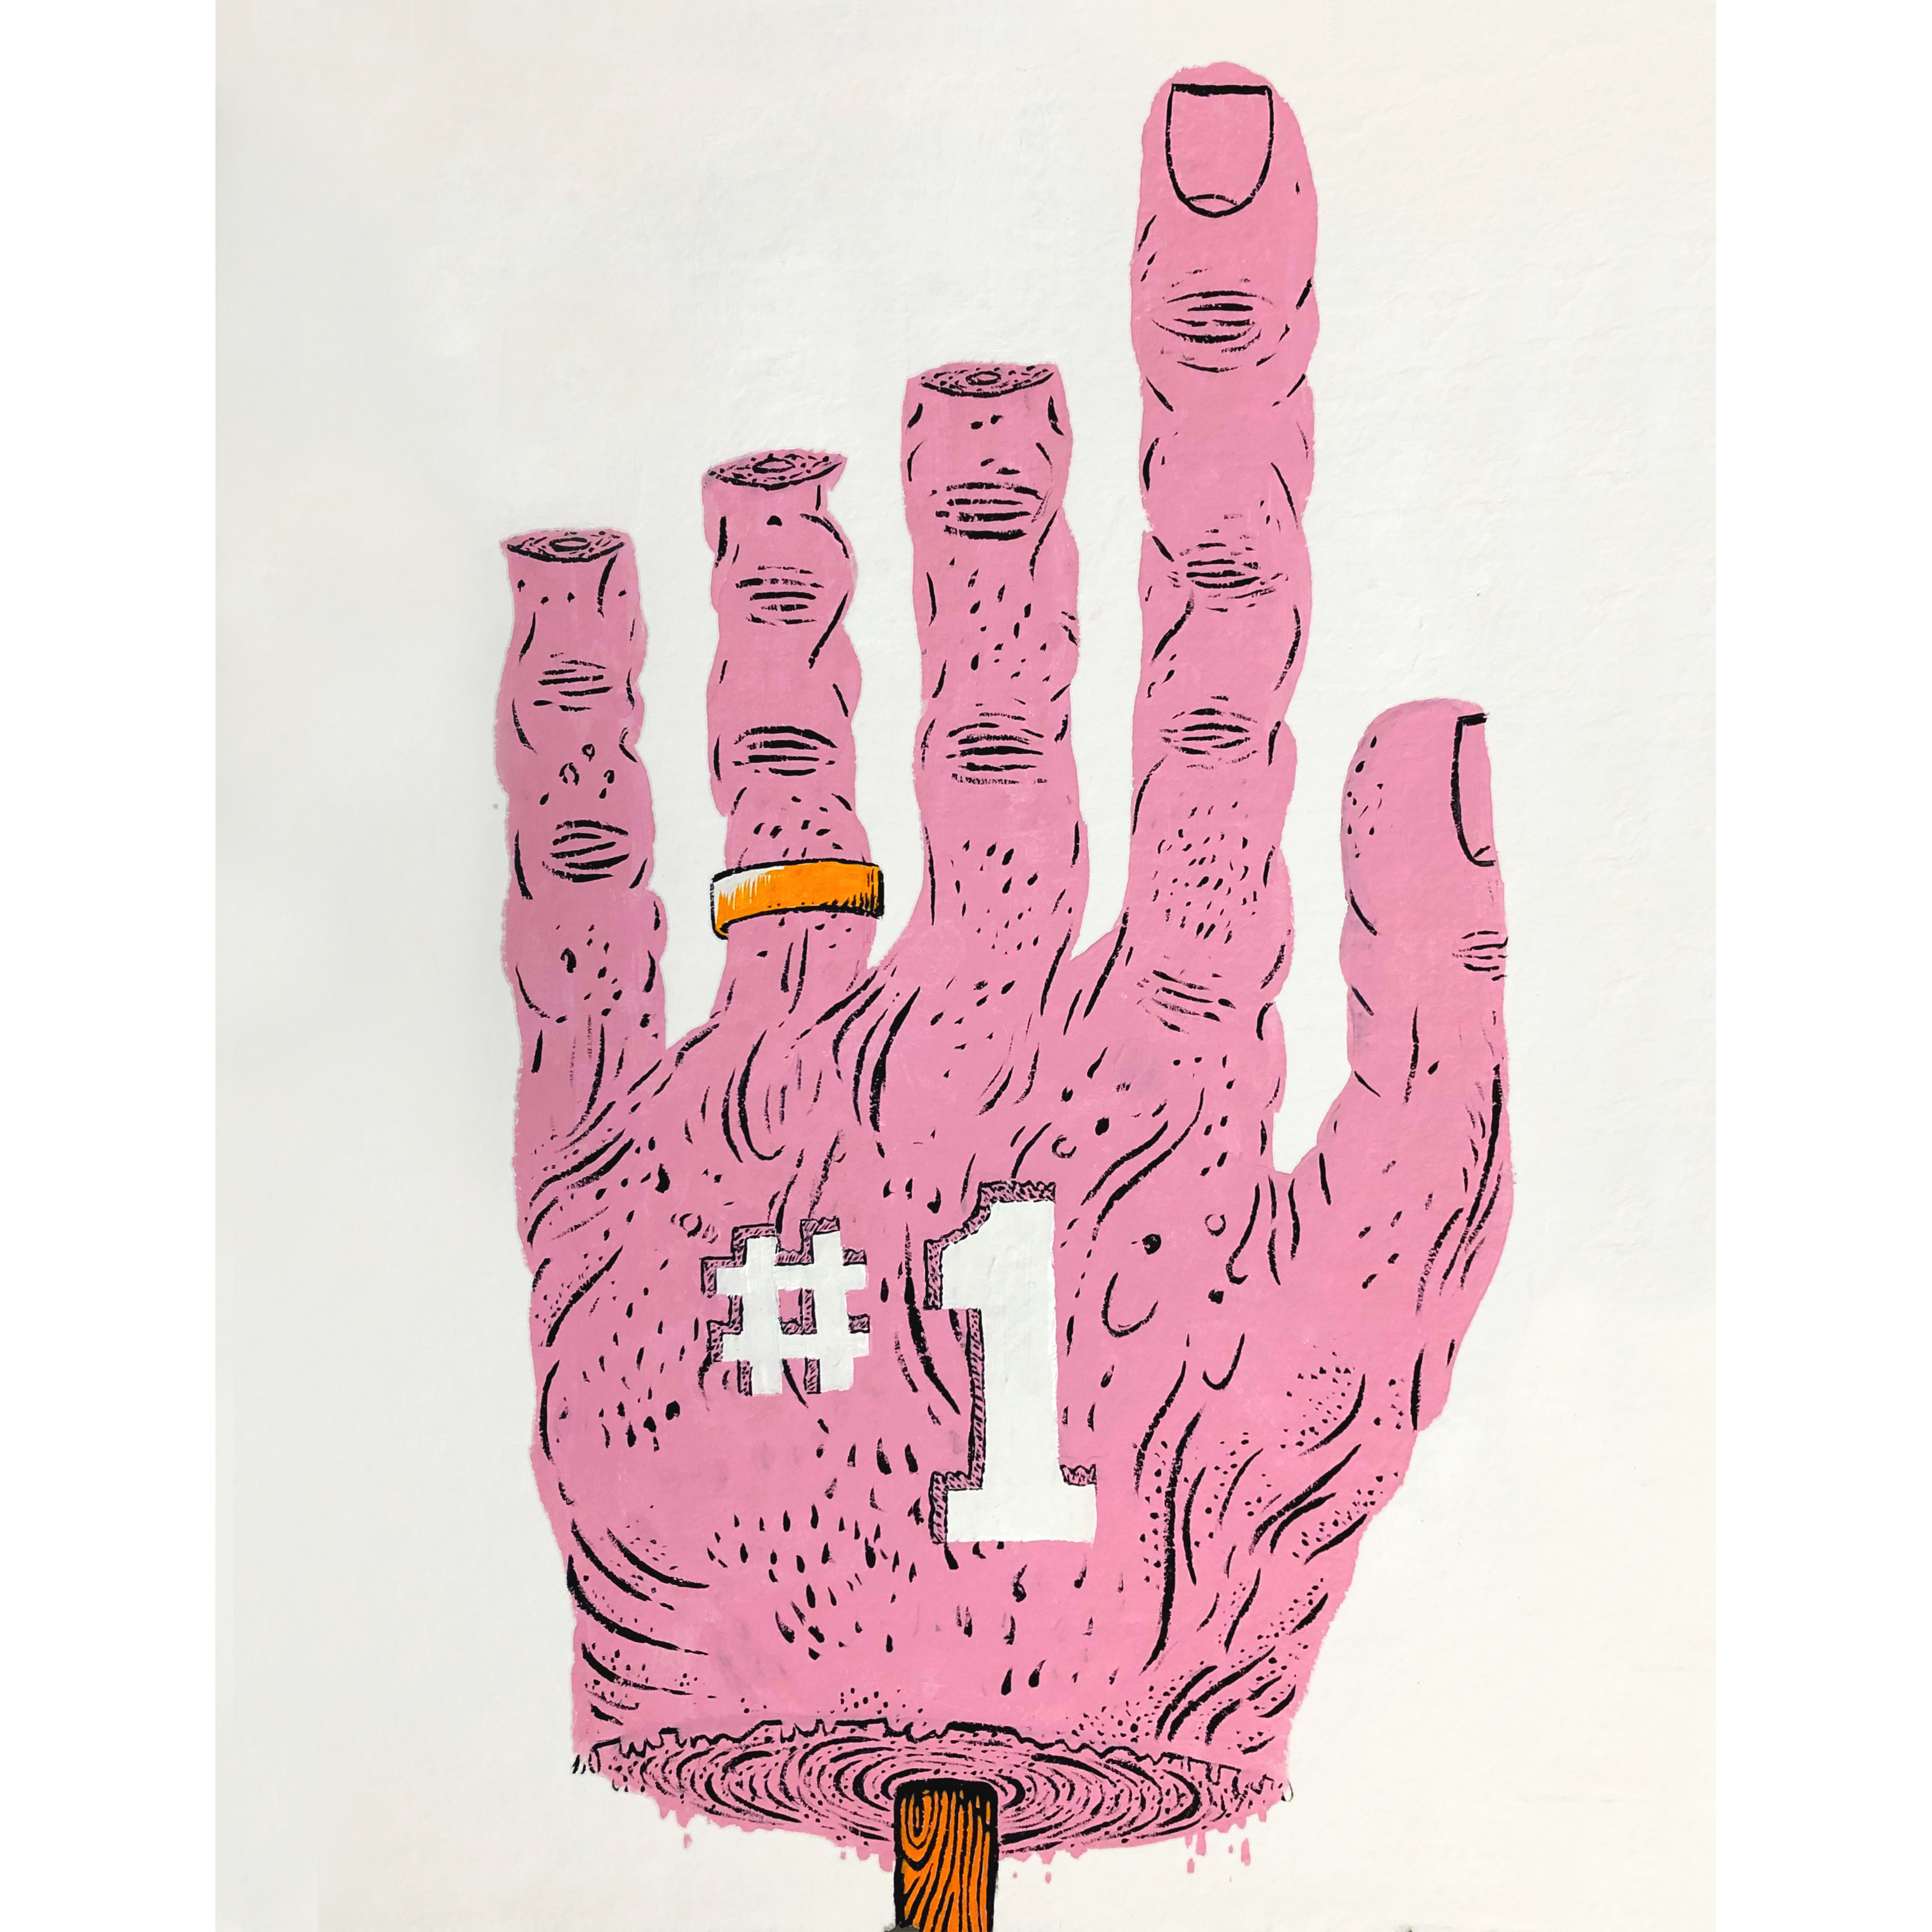 Paul Gagner #1, 2019, Flashe on rag paper, 15 x 22 inches